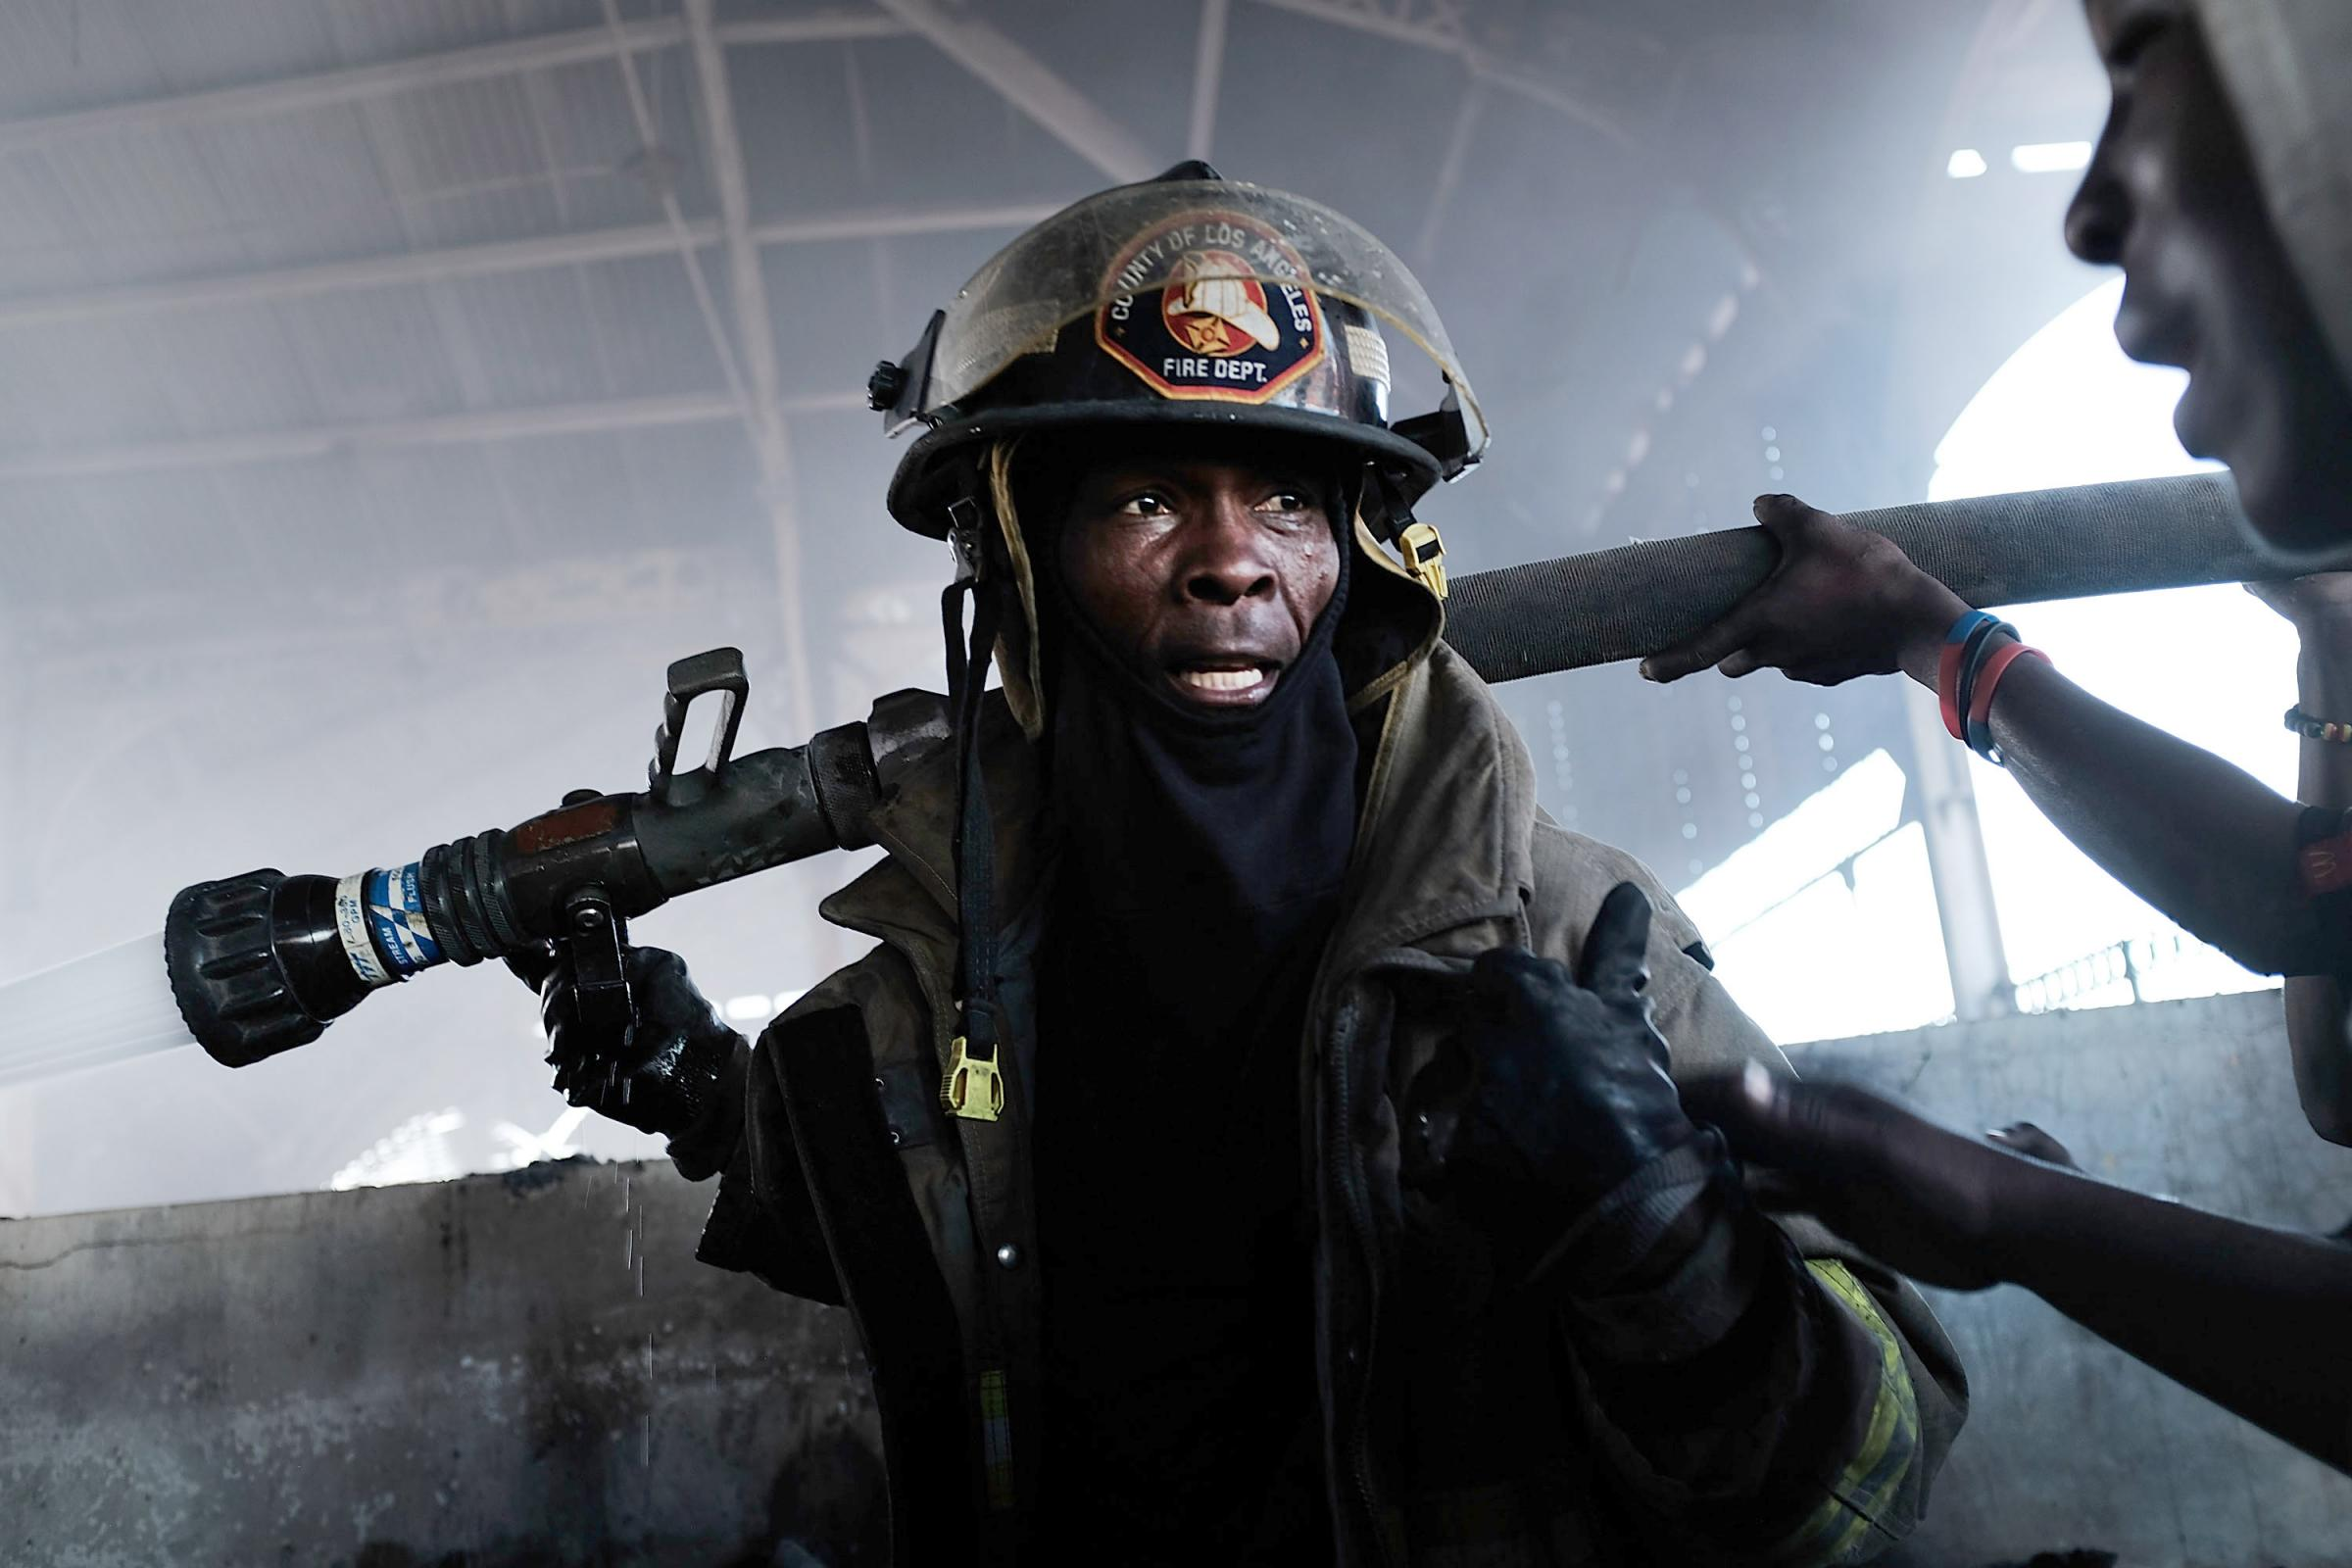 Firefighters work to put out a blaze at Port-au-Prince's historic Iron Market on February 13, 2018 in Port-au-Prince, Haiti